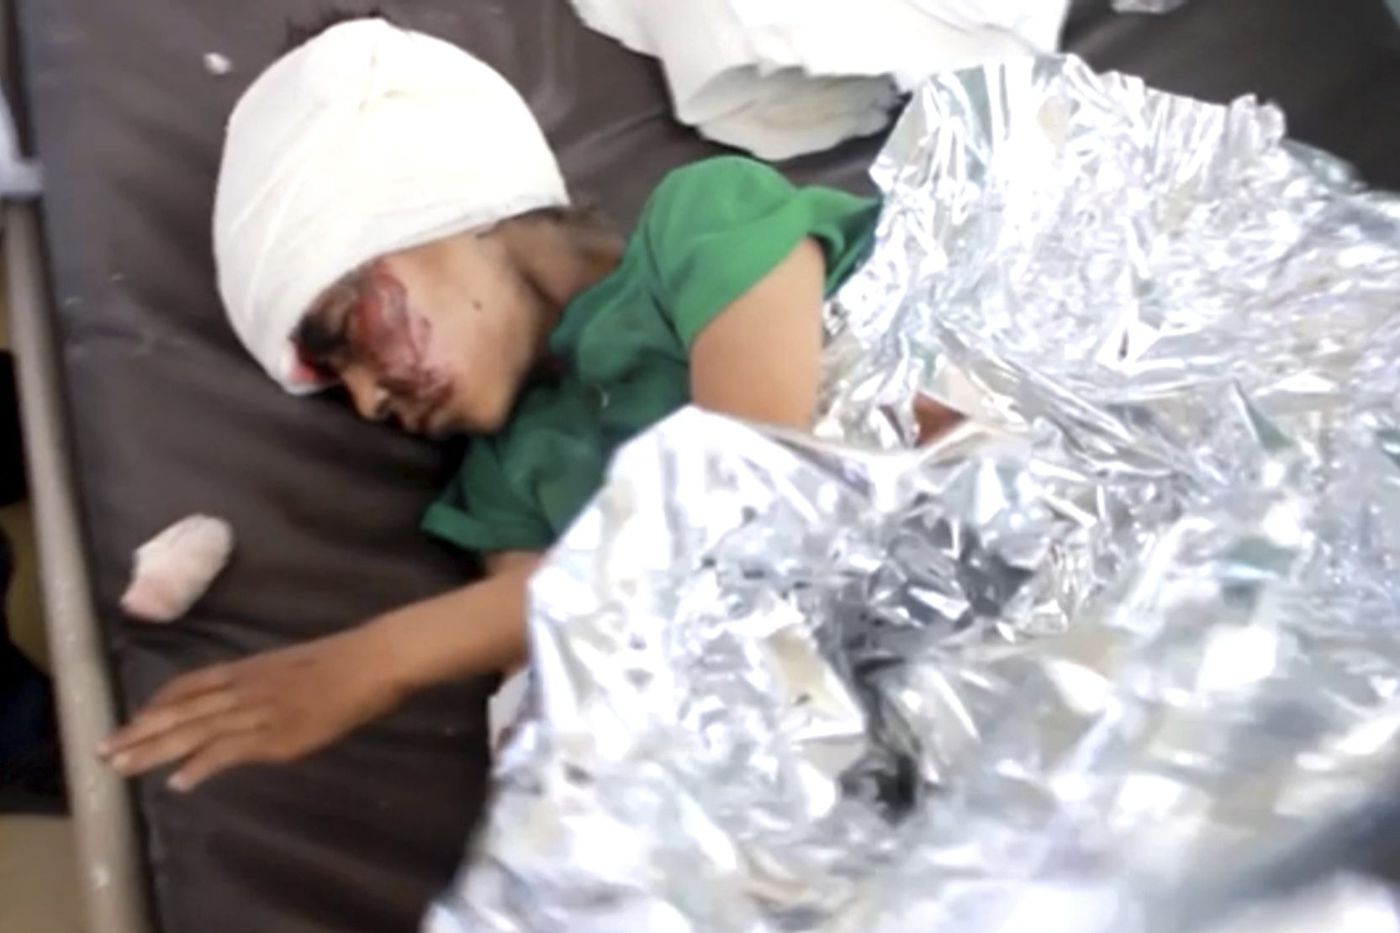 I don't remember voting for U.S. bombs to murder little kids in Yemen, do you? | Will Bunch